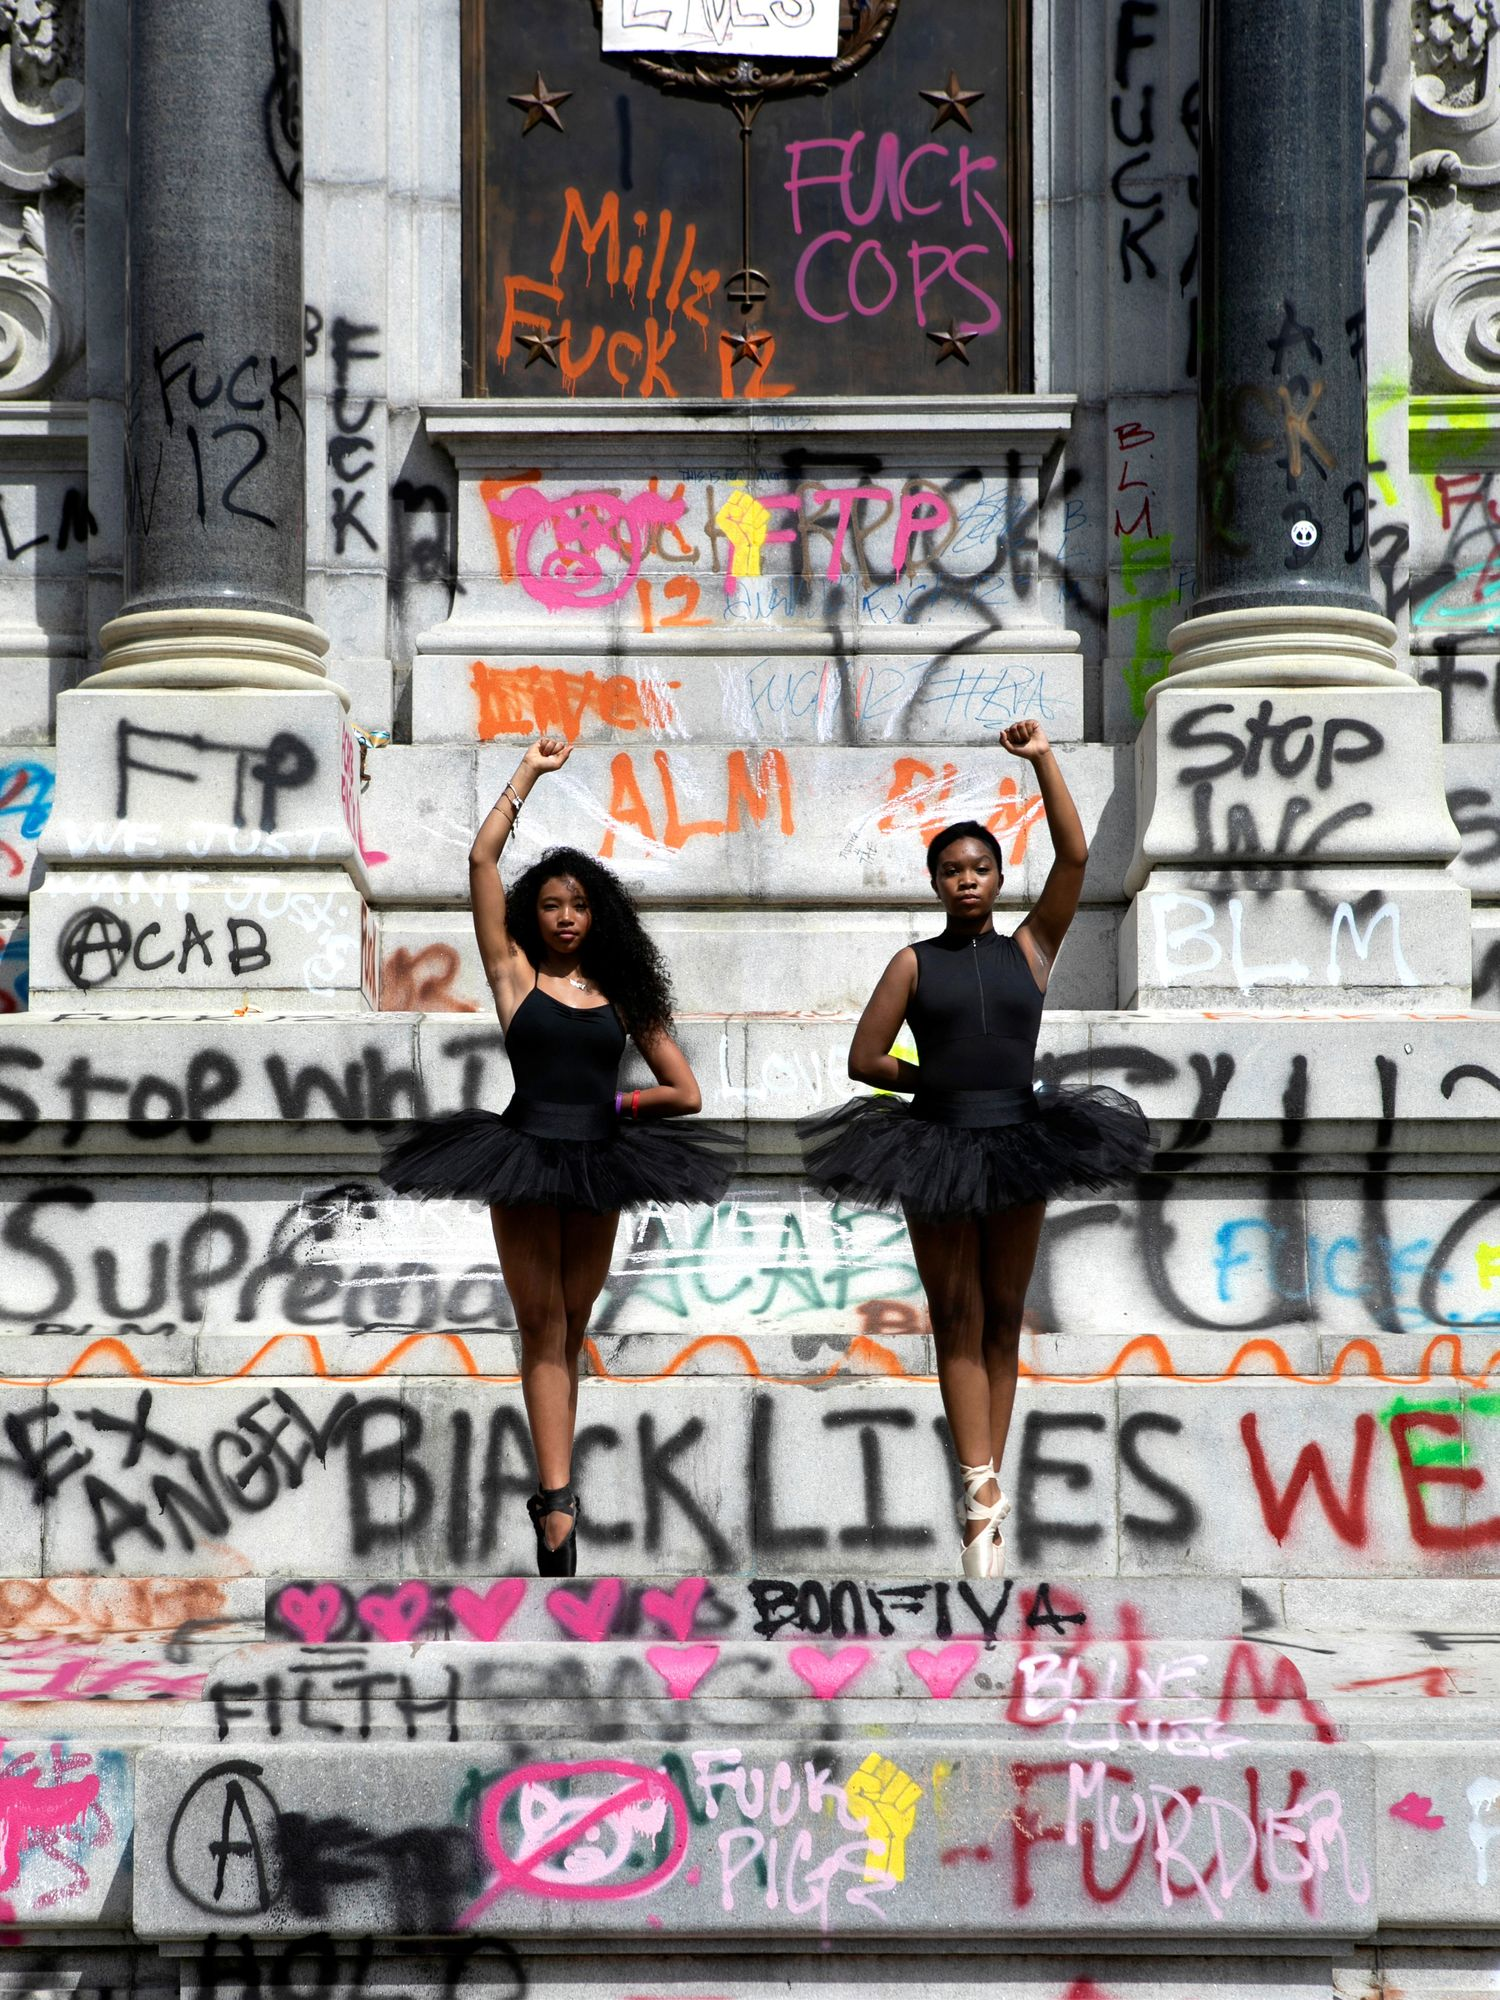 Meet Ava Holloway And Kennedy George The Teens Whose Photo Dancing On A Confederate Statue Went Viral Dance Magazine